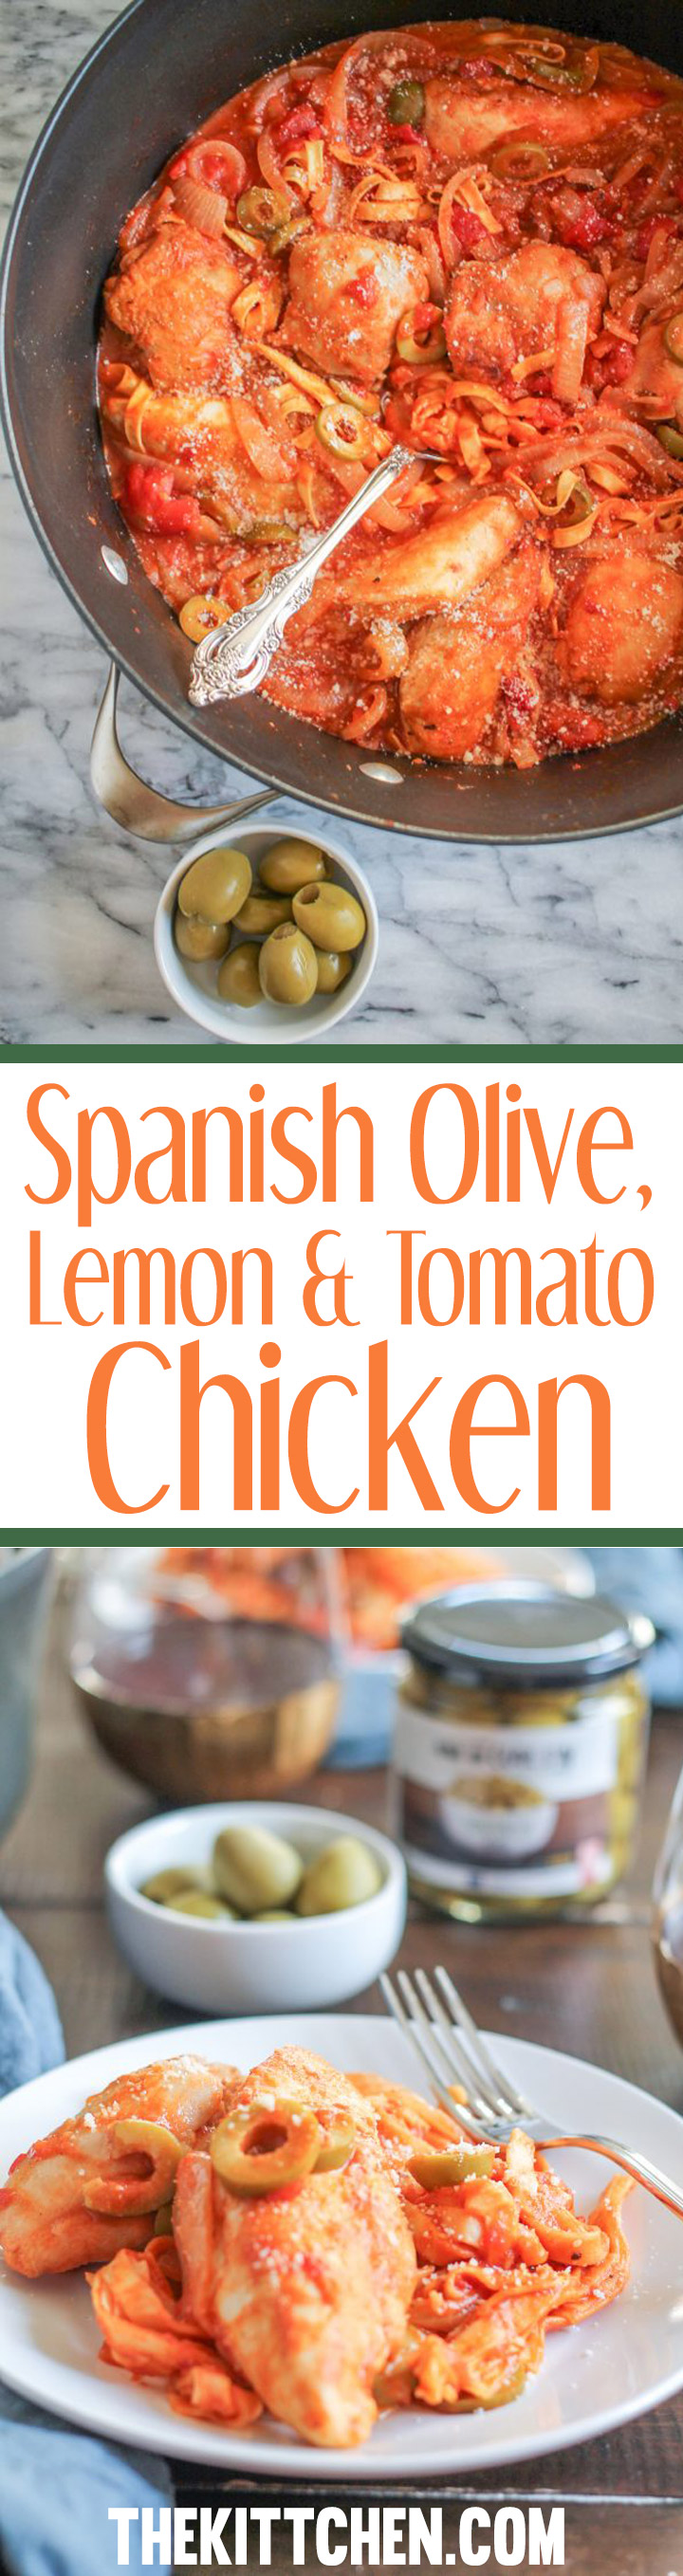 This Spanish Olive, Lemon, and Tomato Chicken is an easy weeknight meal that your family will love. The best part is that the entire meal is made in a dutch oven so clean up is easy!